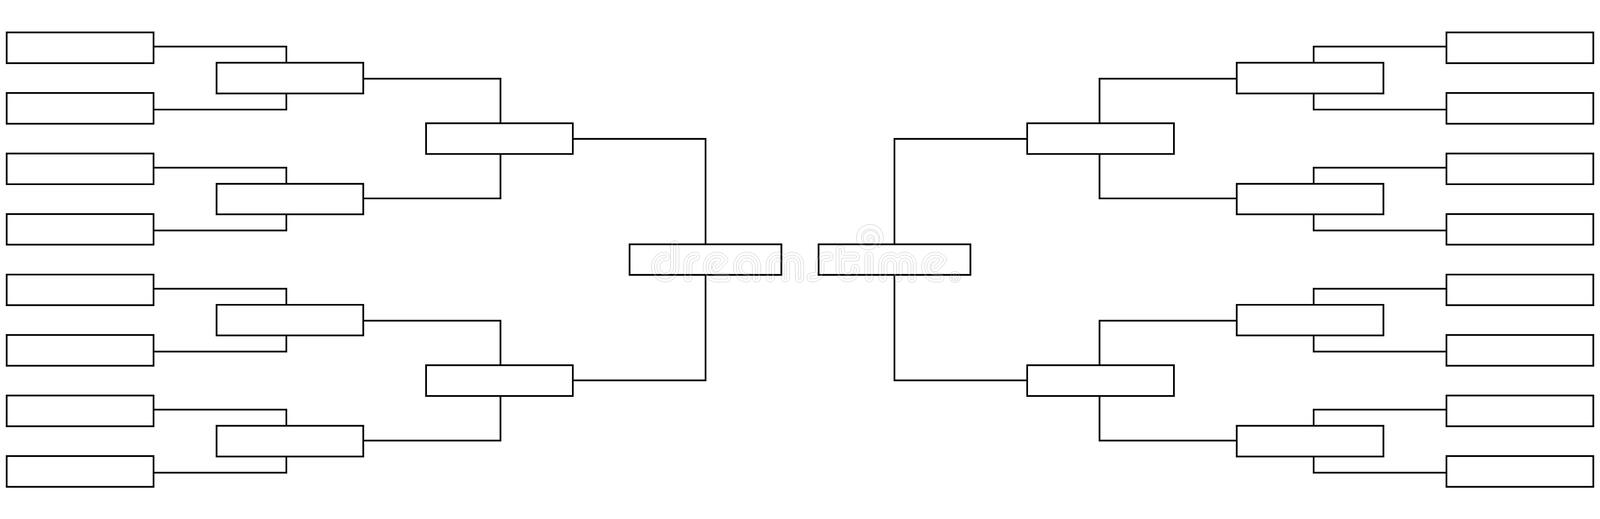 Tournament Quarter-finals Of The Championship Table On